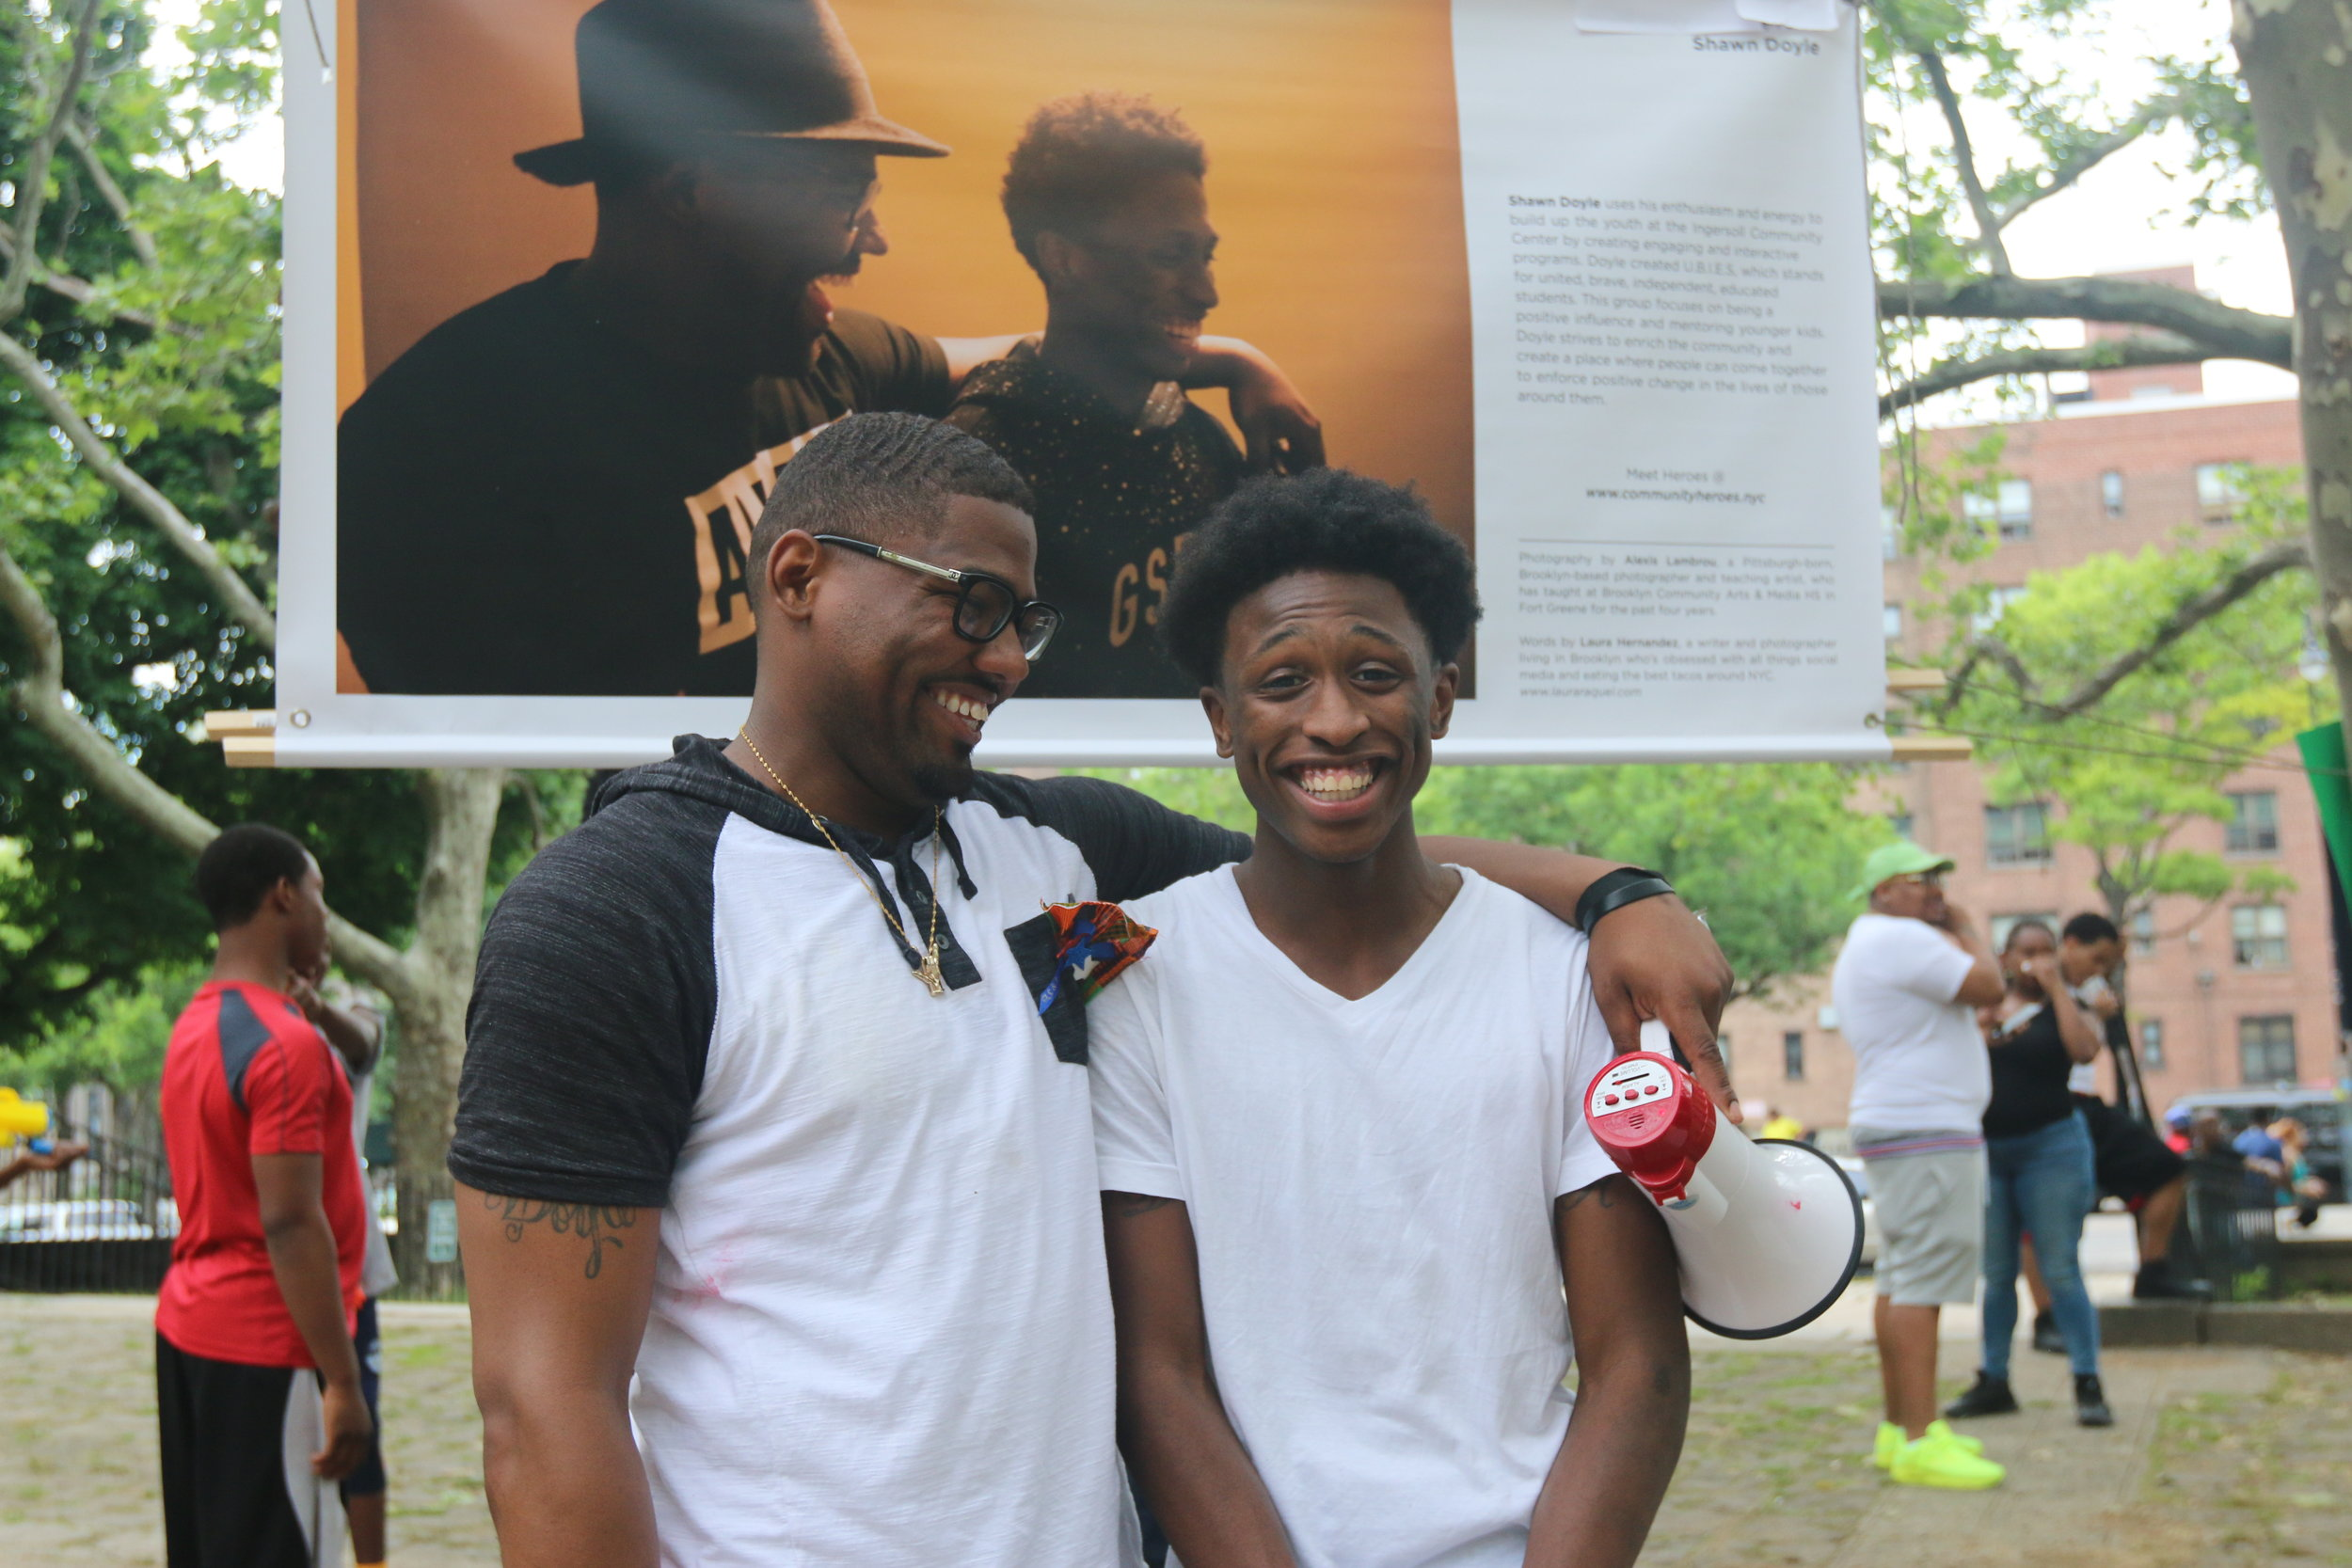 Shawn Doyle (left) and D'Angelo Rembert AKA Dee Dee (right) stand in front of their banner at the annual FSR Peace Fest in Fort Greene, Brooklyn.